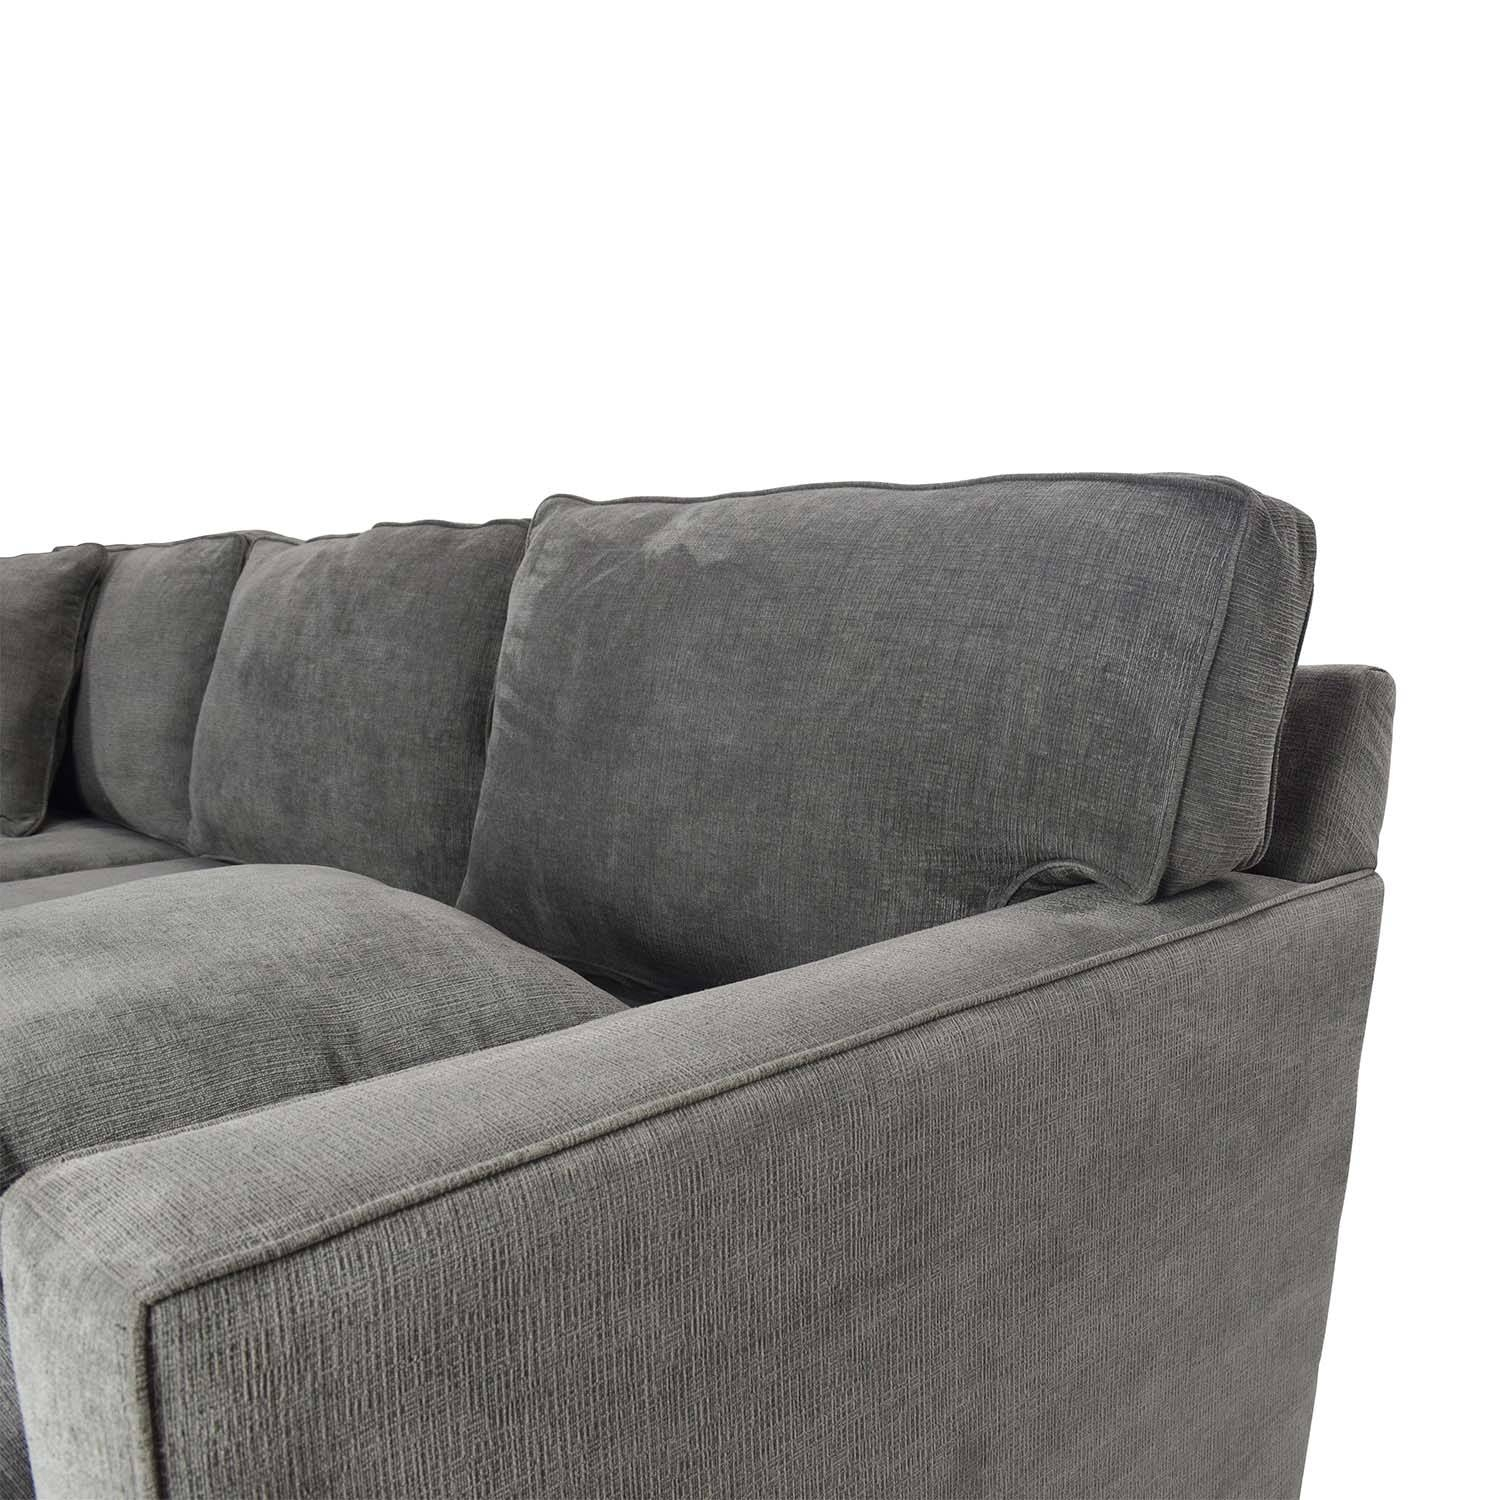 51% Off - Macy's Radley Sectional Sofa / Sofas within Macys Sofas (Image 1 of 25)